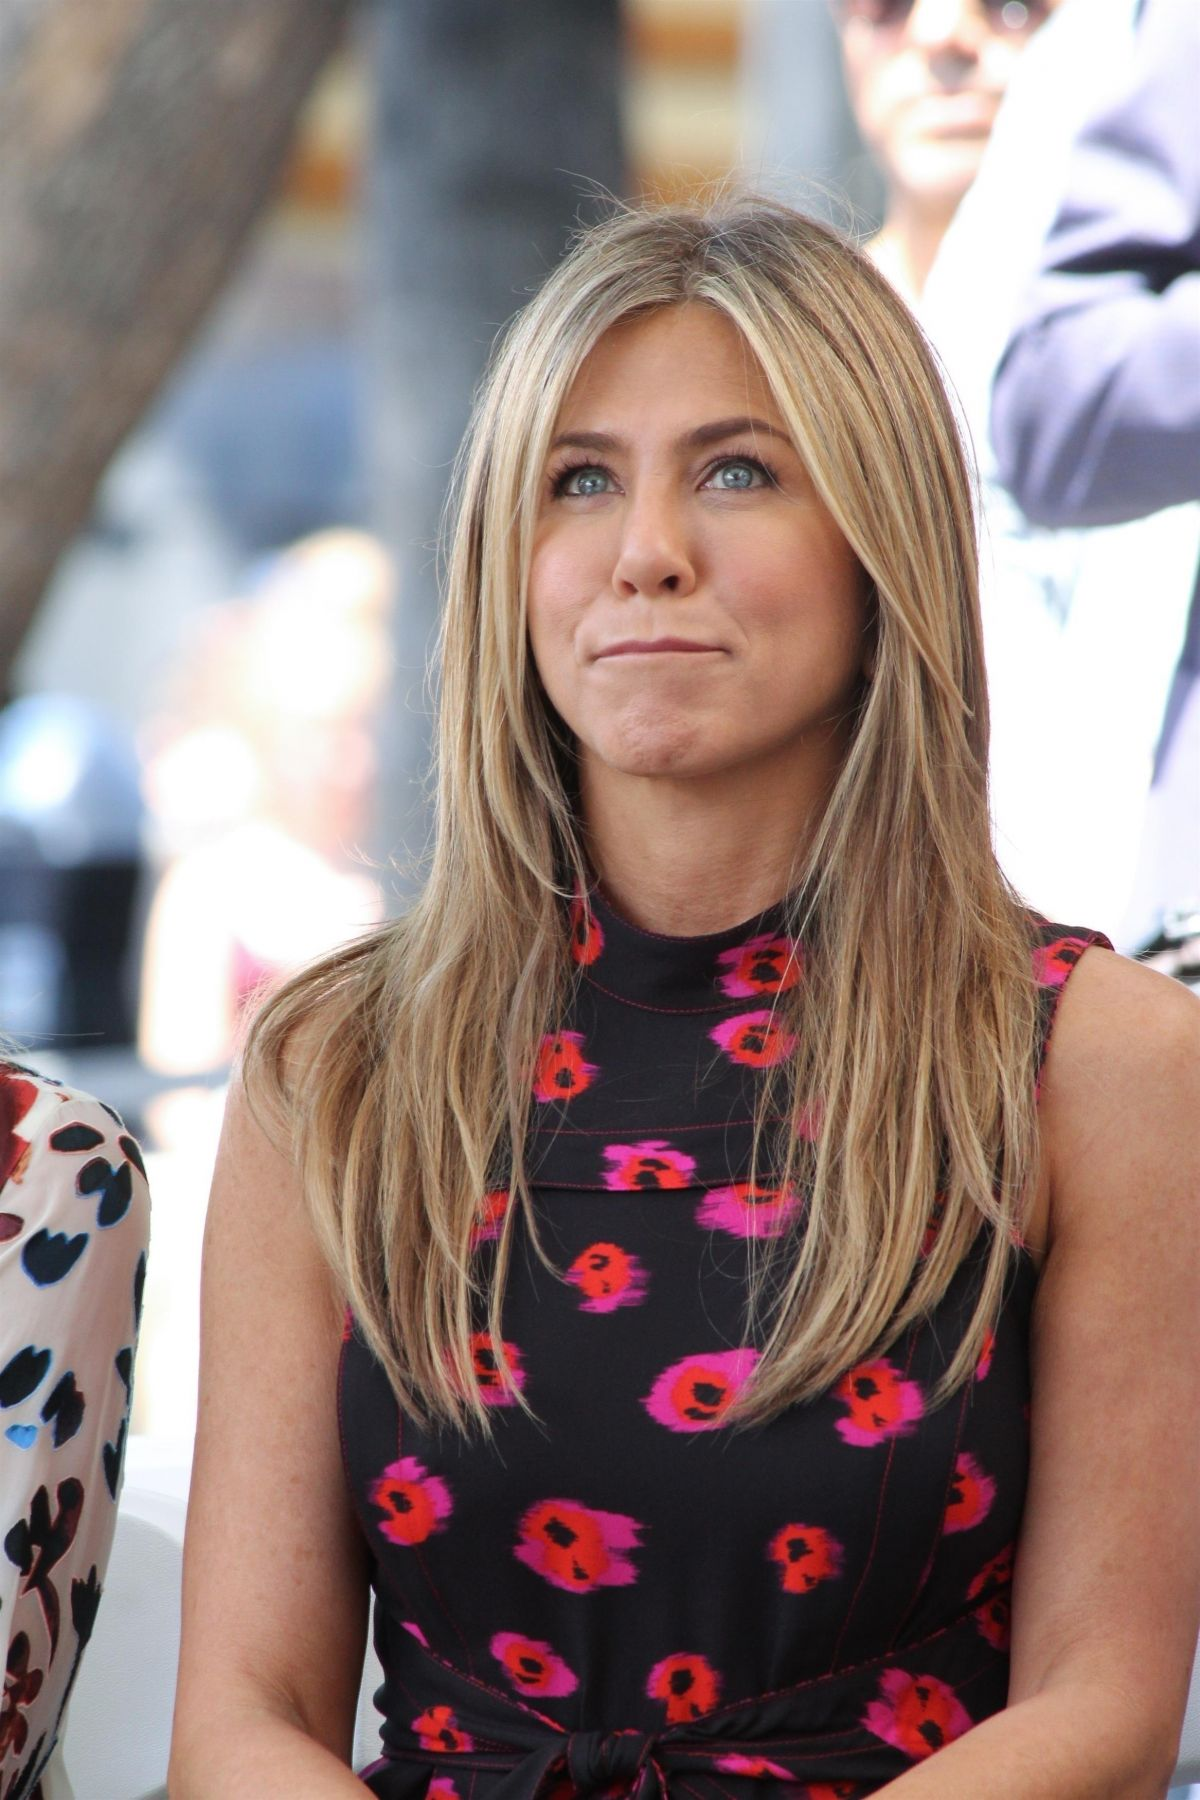 Jennifer Aniston At Jason Bateman's Hollywood Star Ceremony in Hollywood   jennifer-aniston-at-jason-bateman-s-hollywood-star-ceremony-in-hollywood_8